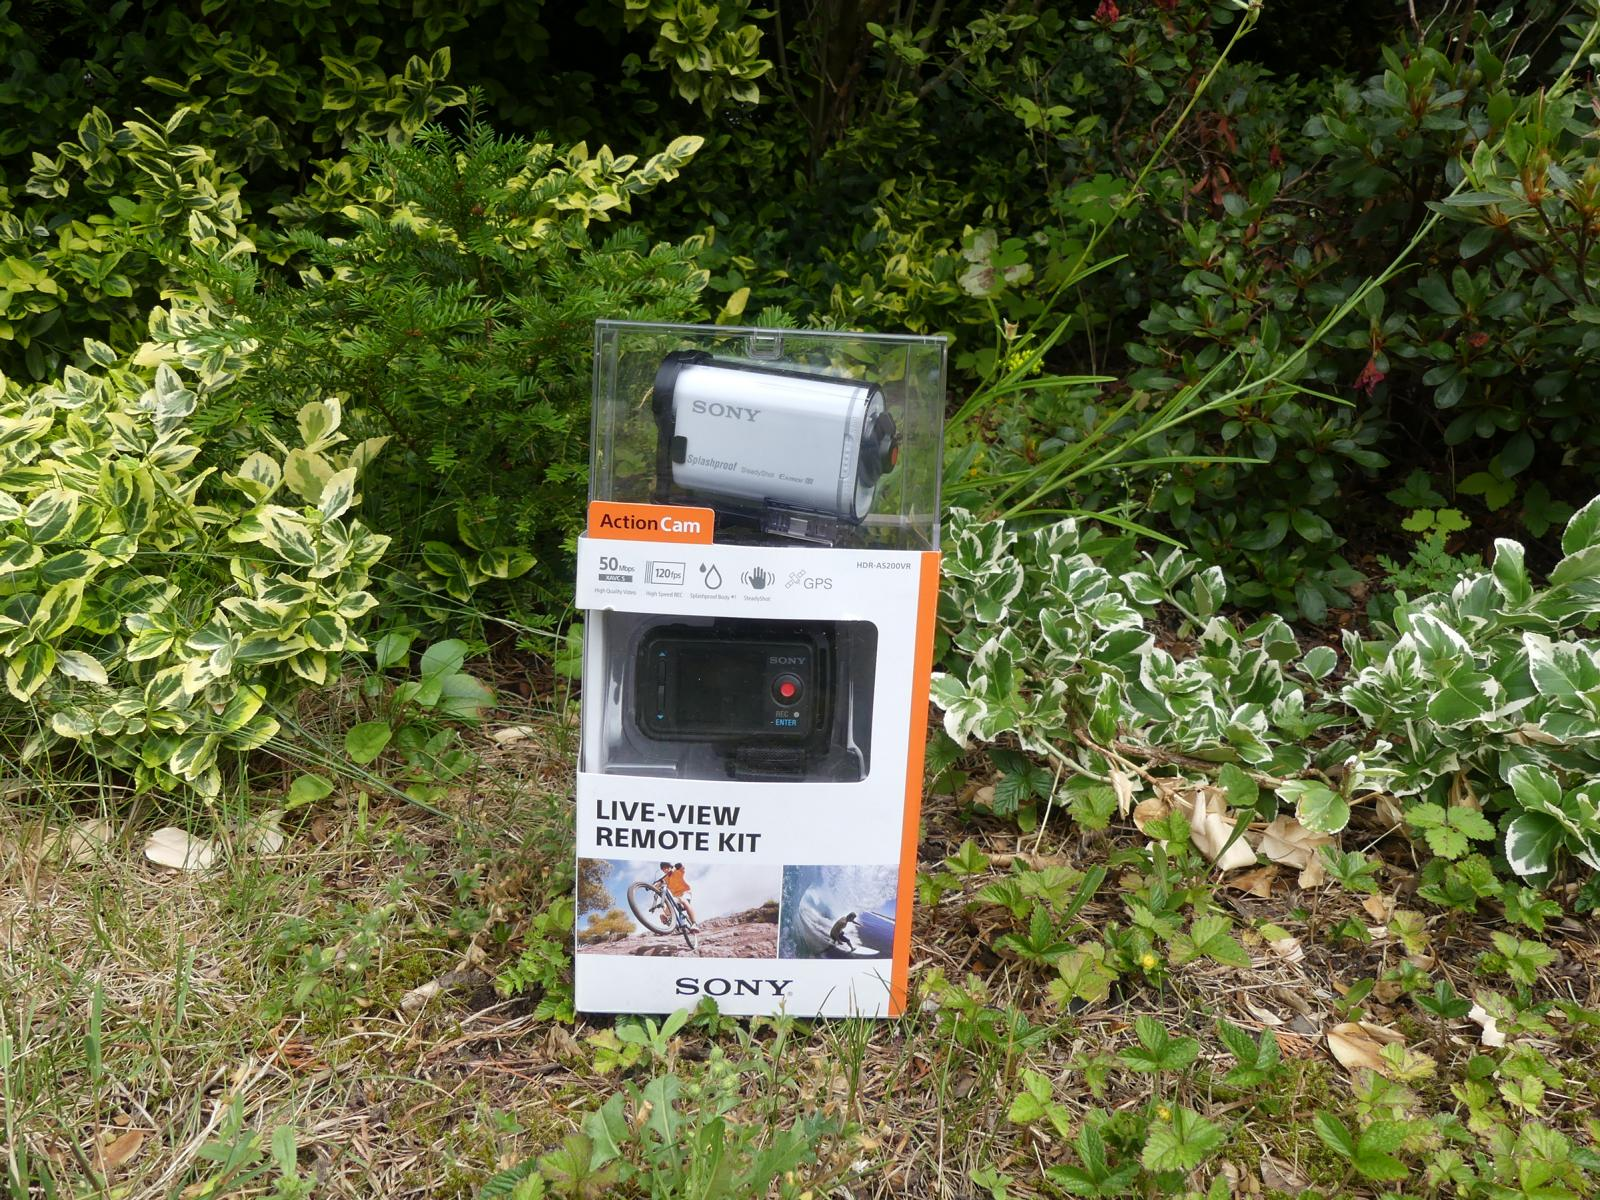 Sony Action Cam Praxistest Outdoor